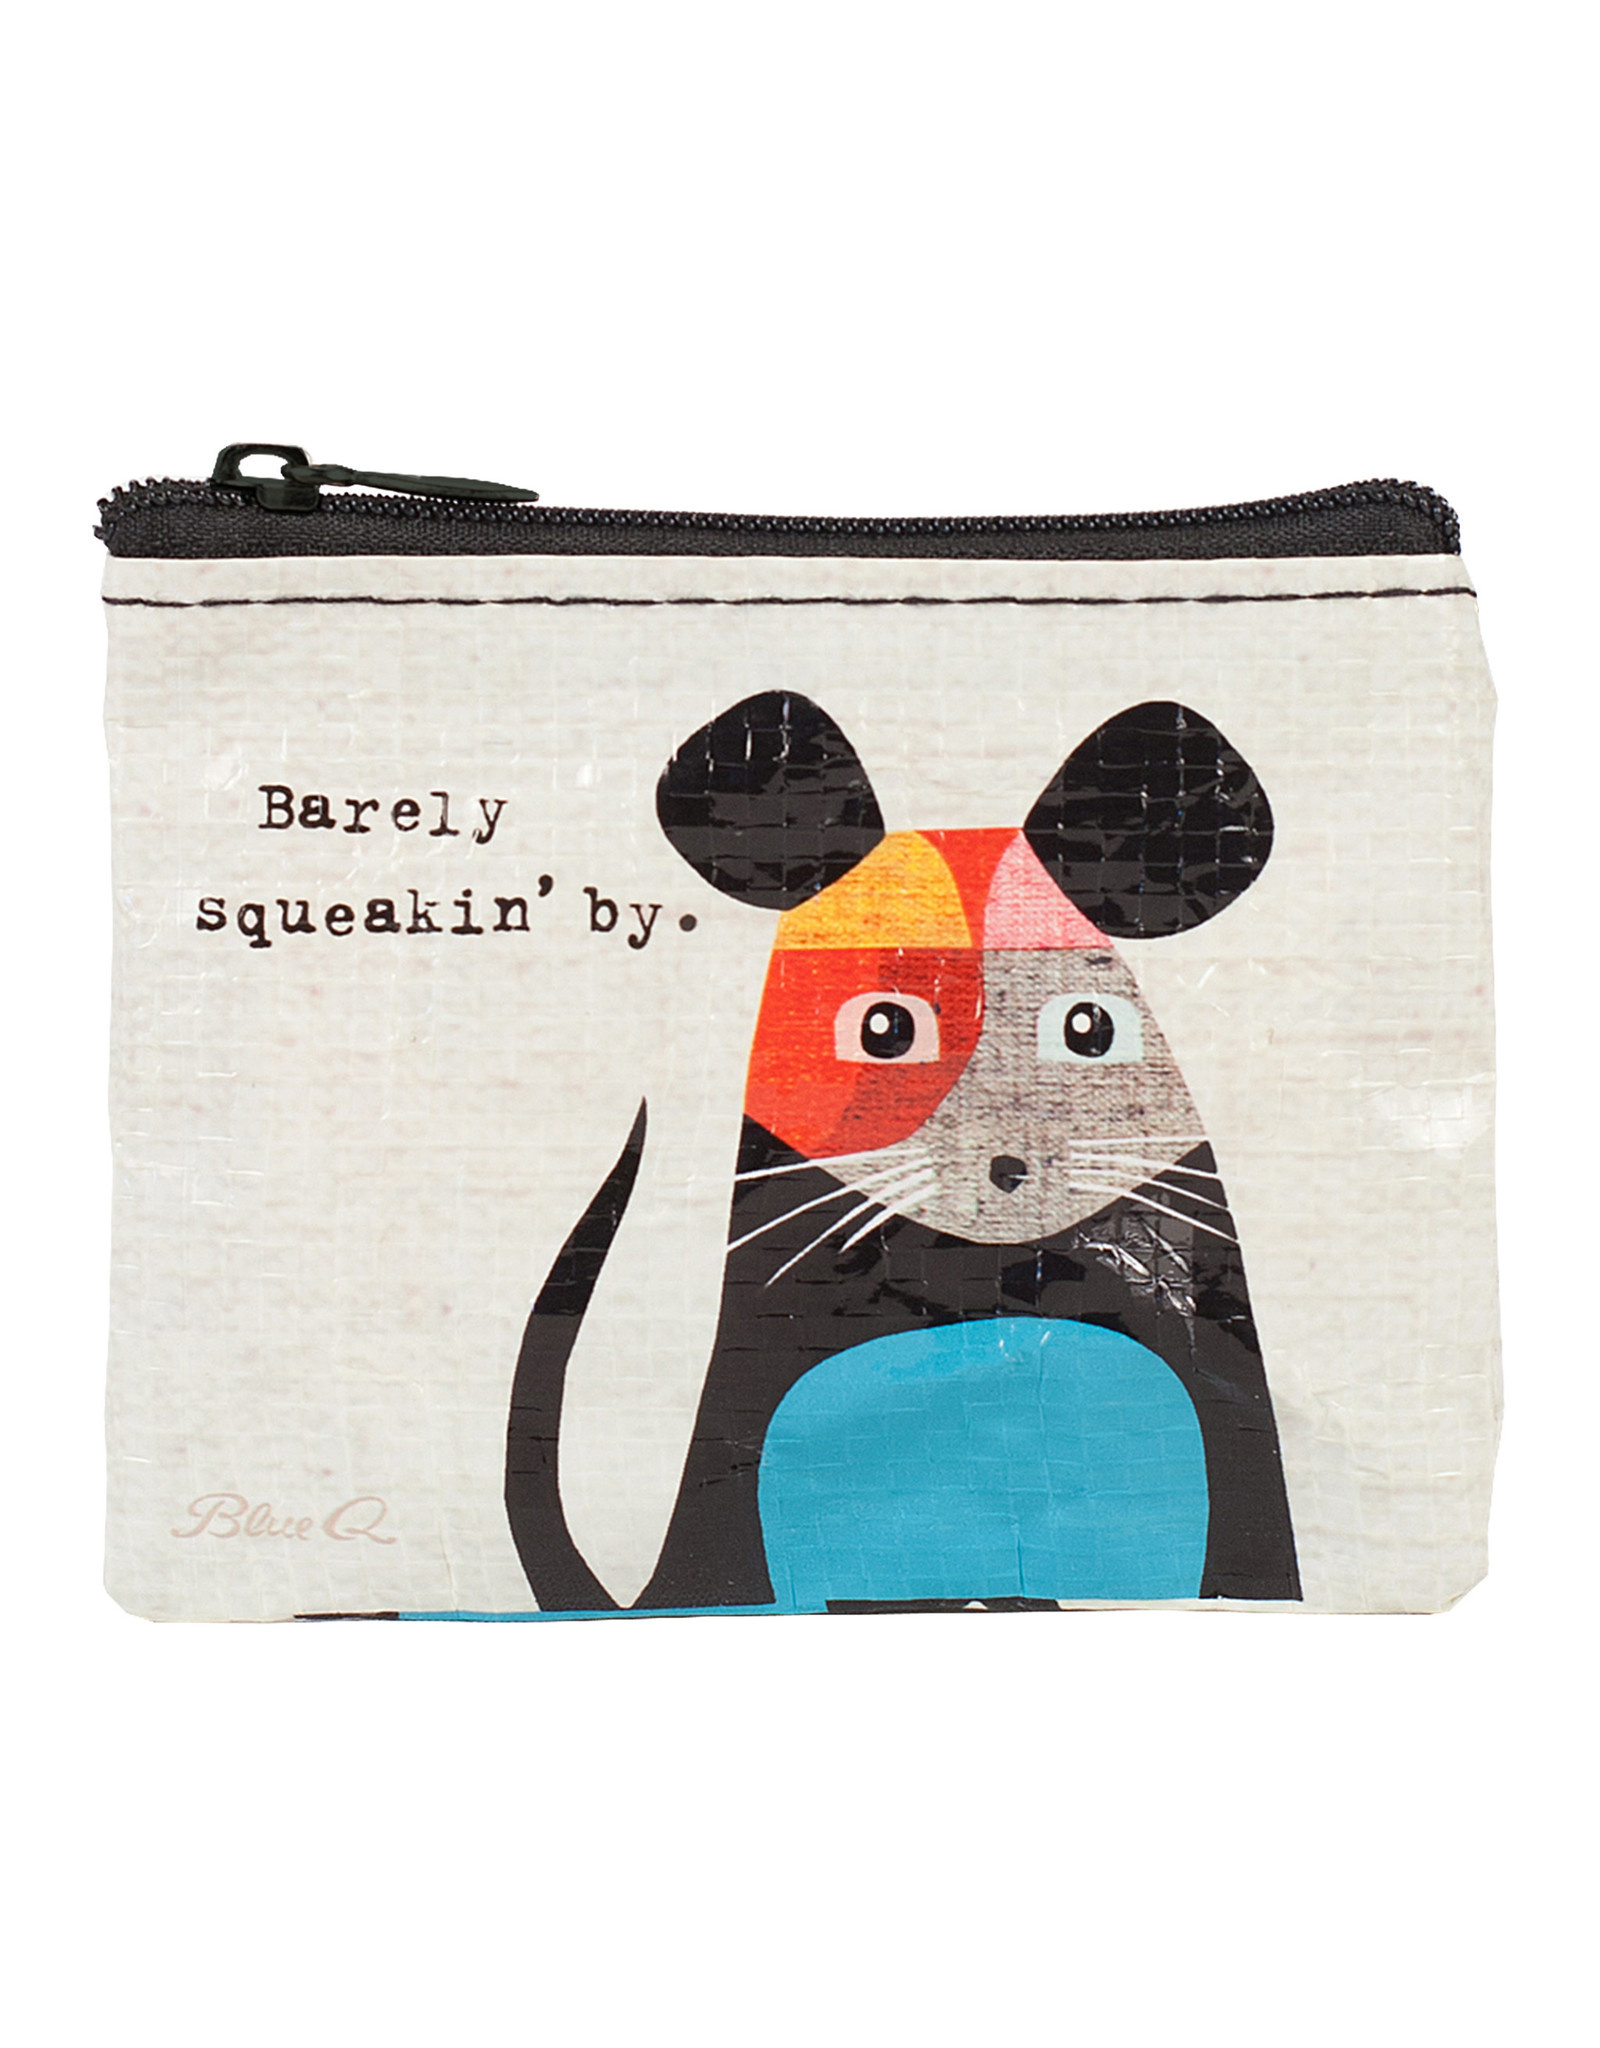 Blue Q Coin Purse - Barely Squeakin By